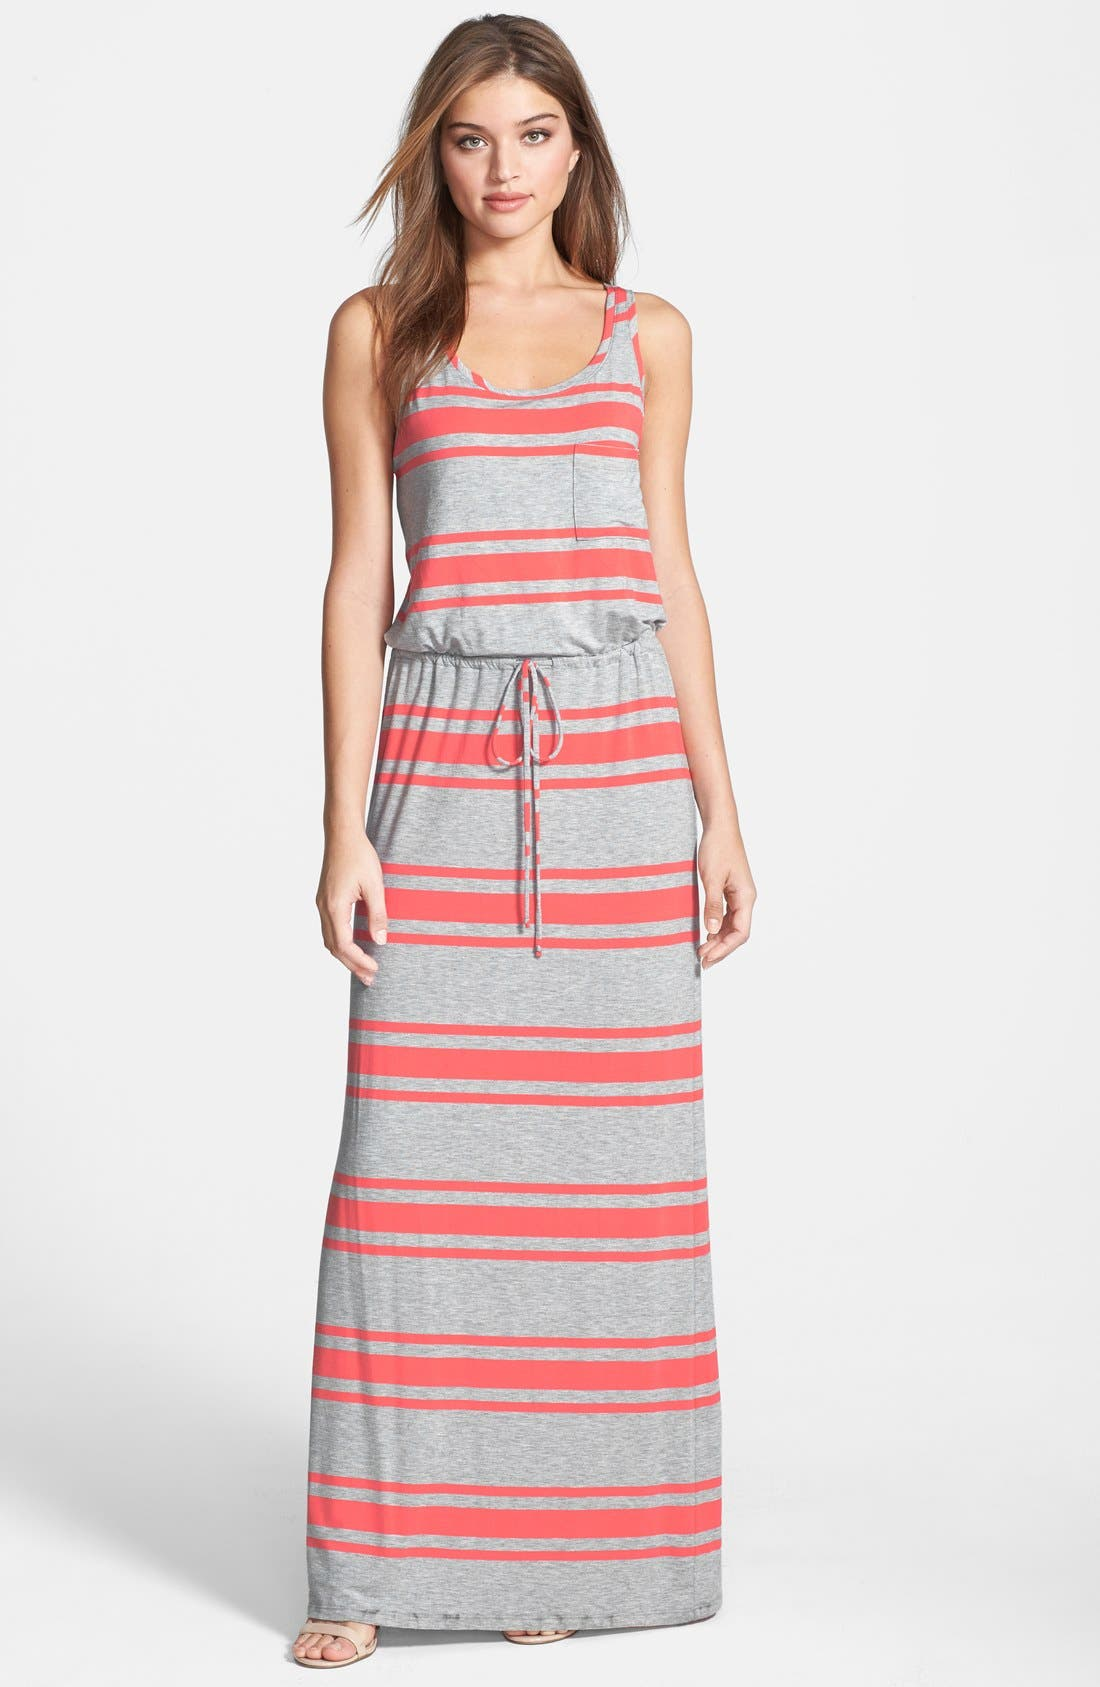 Drawstring Jersey Maxi Dress,                         Main,                         color, Heather Grey/ Coral Stripe